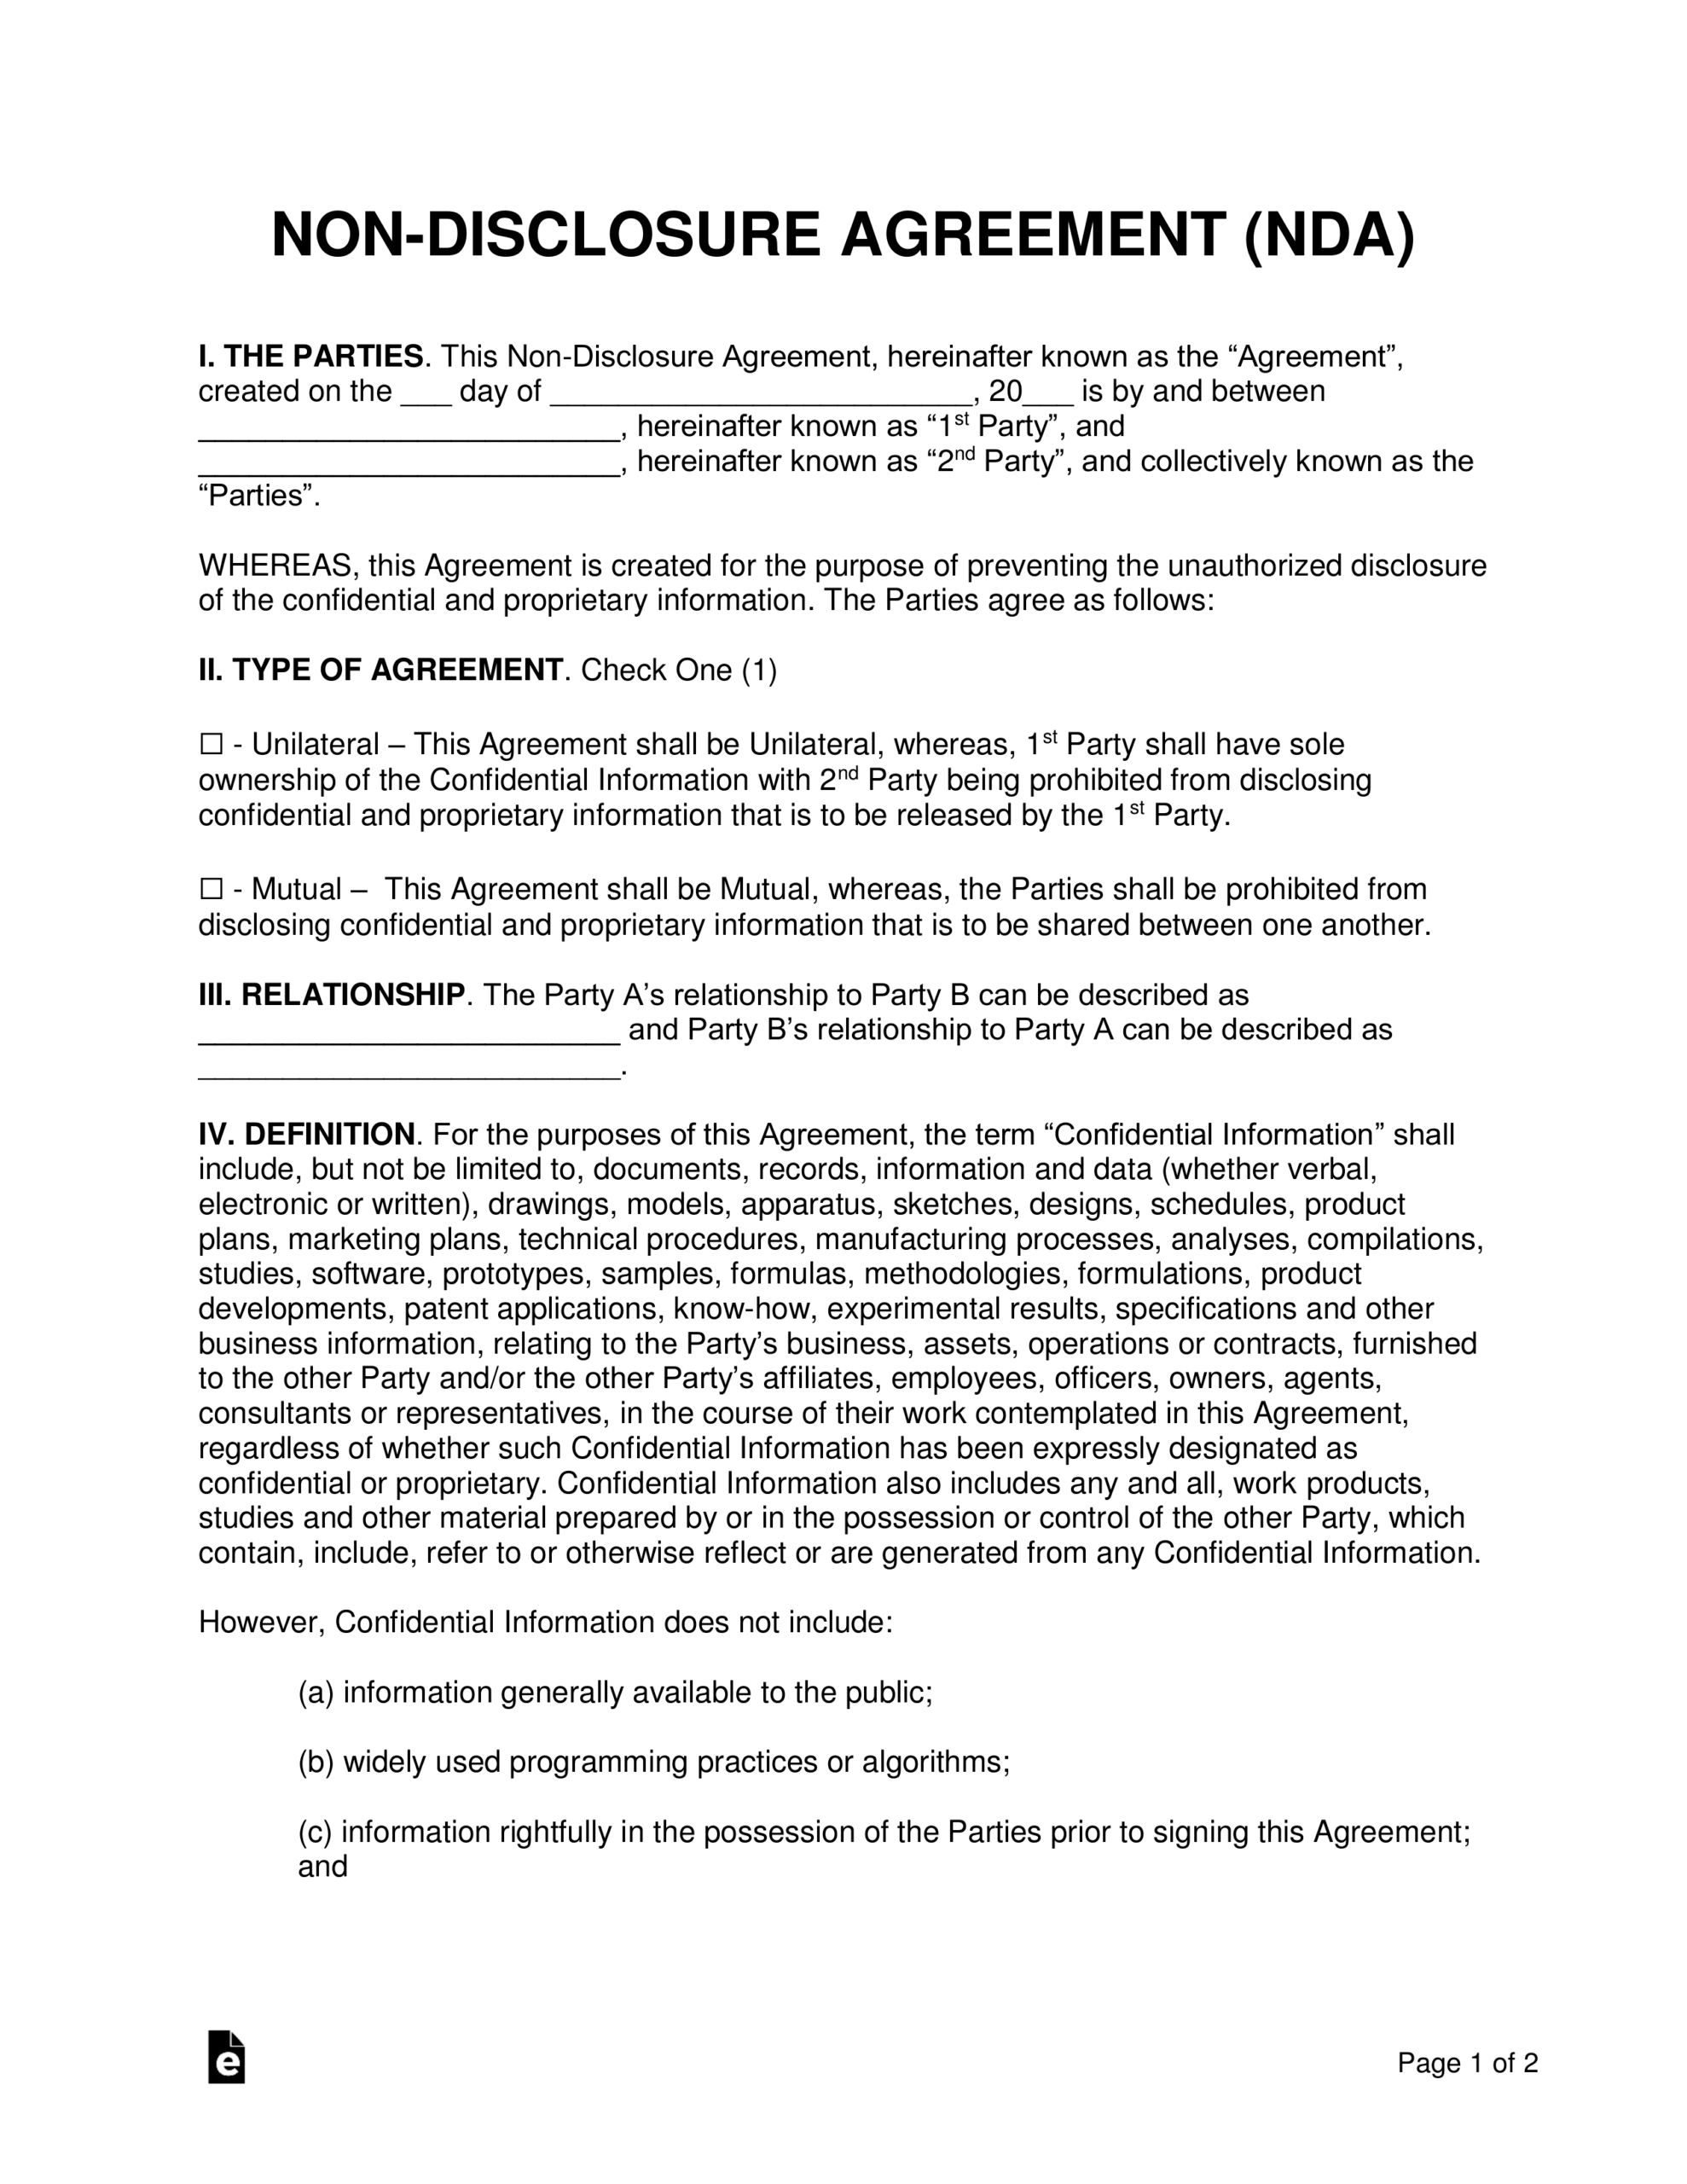 002 Non Disclosure Agreement Template Word Archaicawful Inside Nda Template Word Document